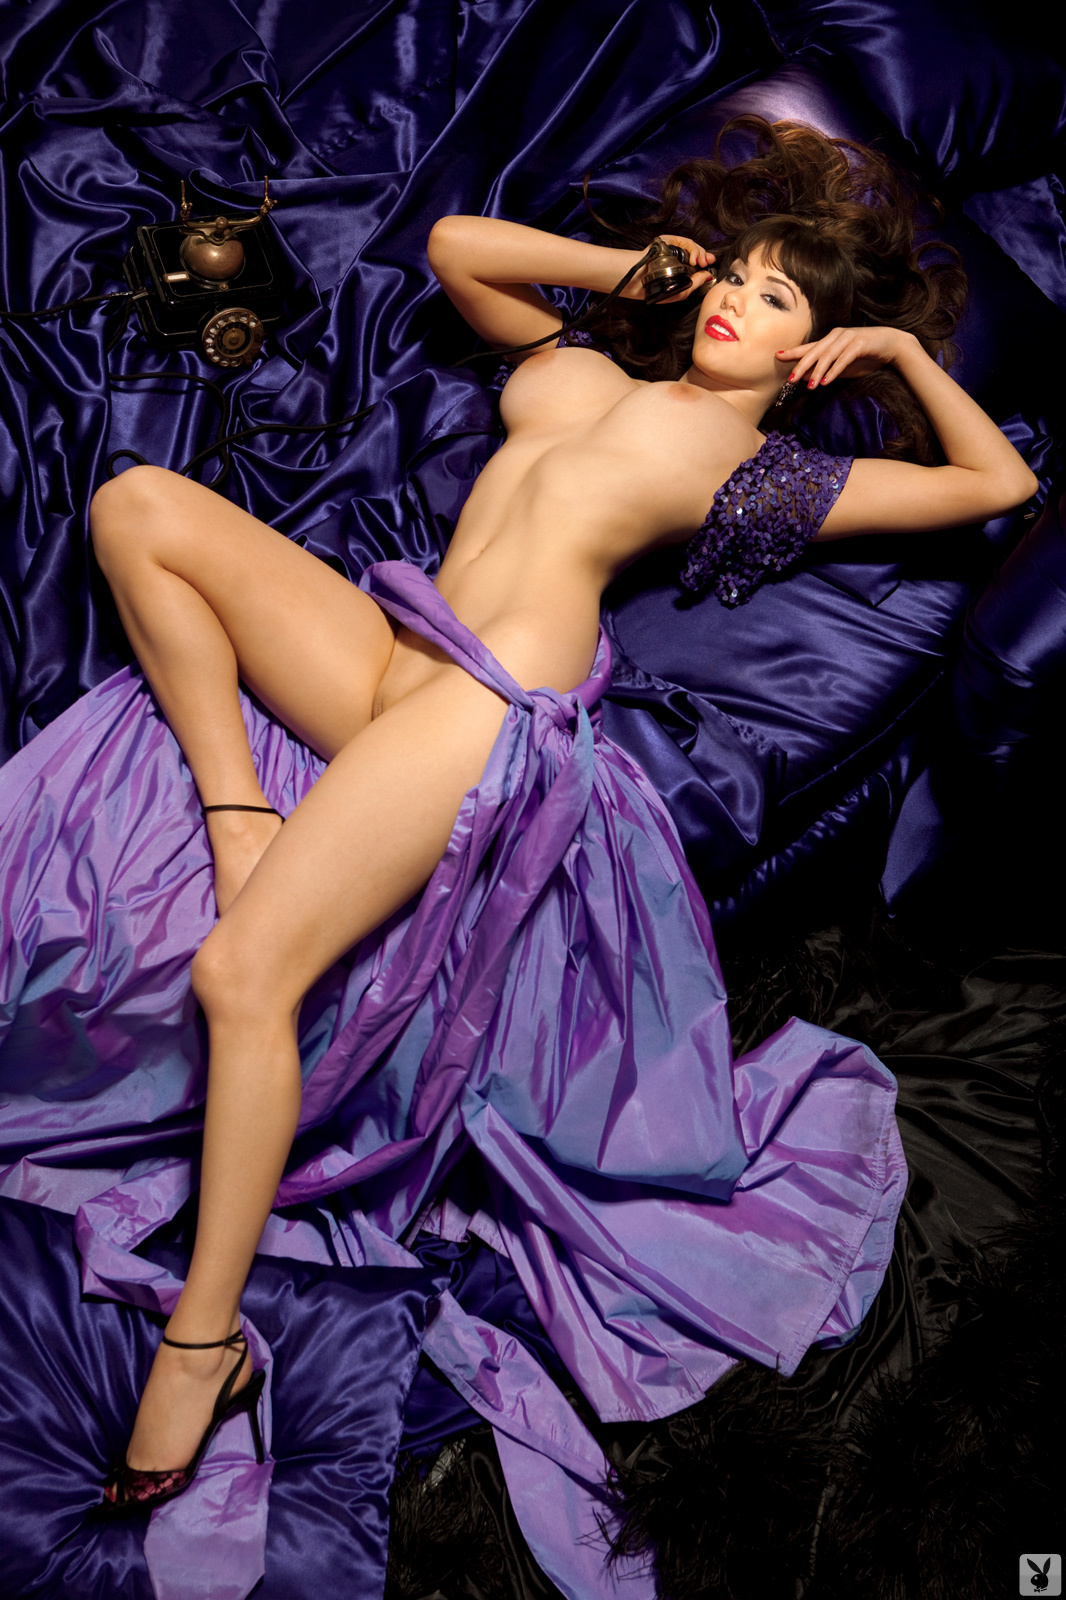 Claire sinclair playboy playmate of year of 2011 7